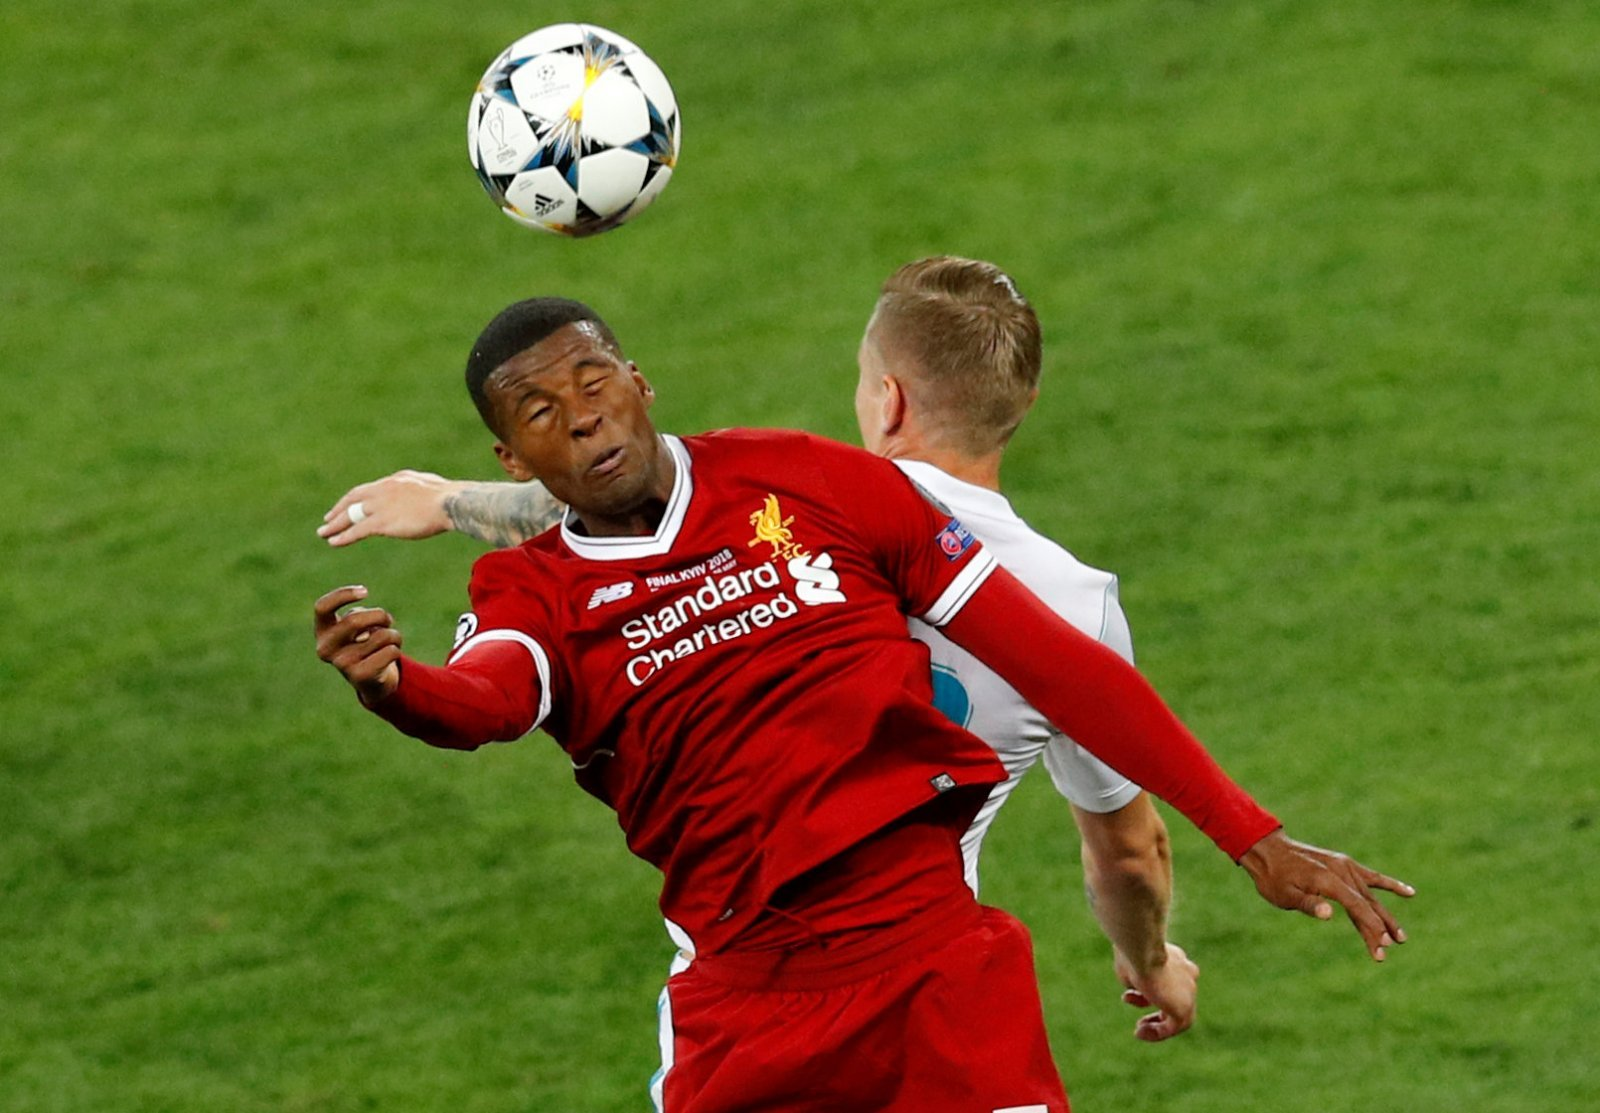 Liverpool fans on Twitter loved seeing Wijnaldum amongst the goals